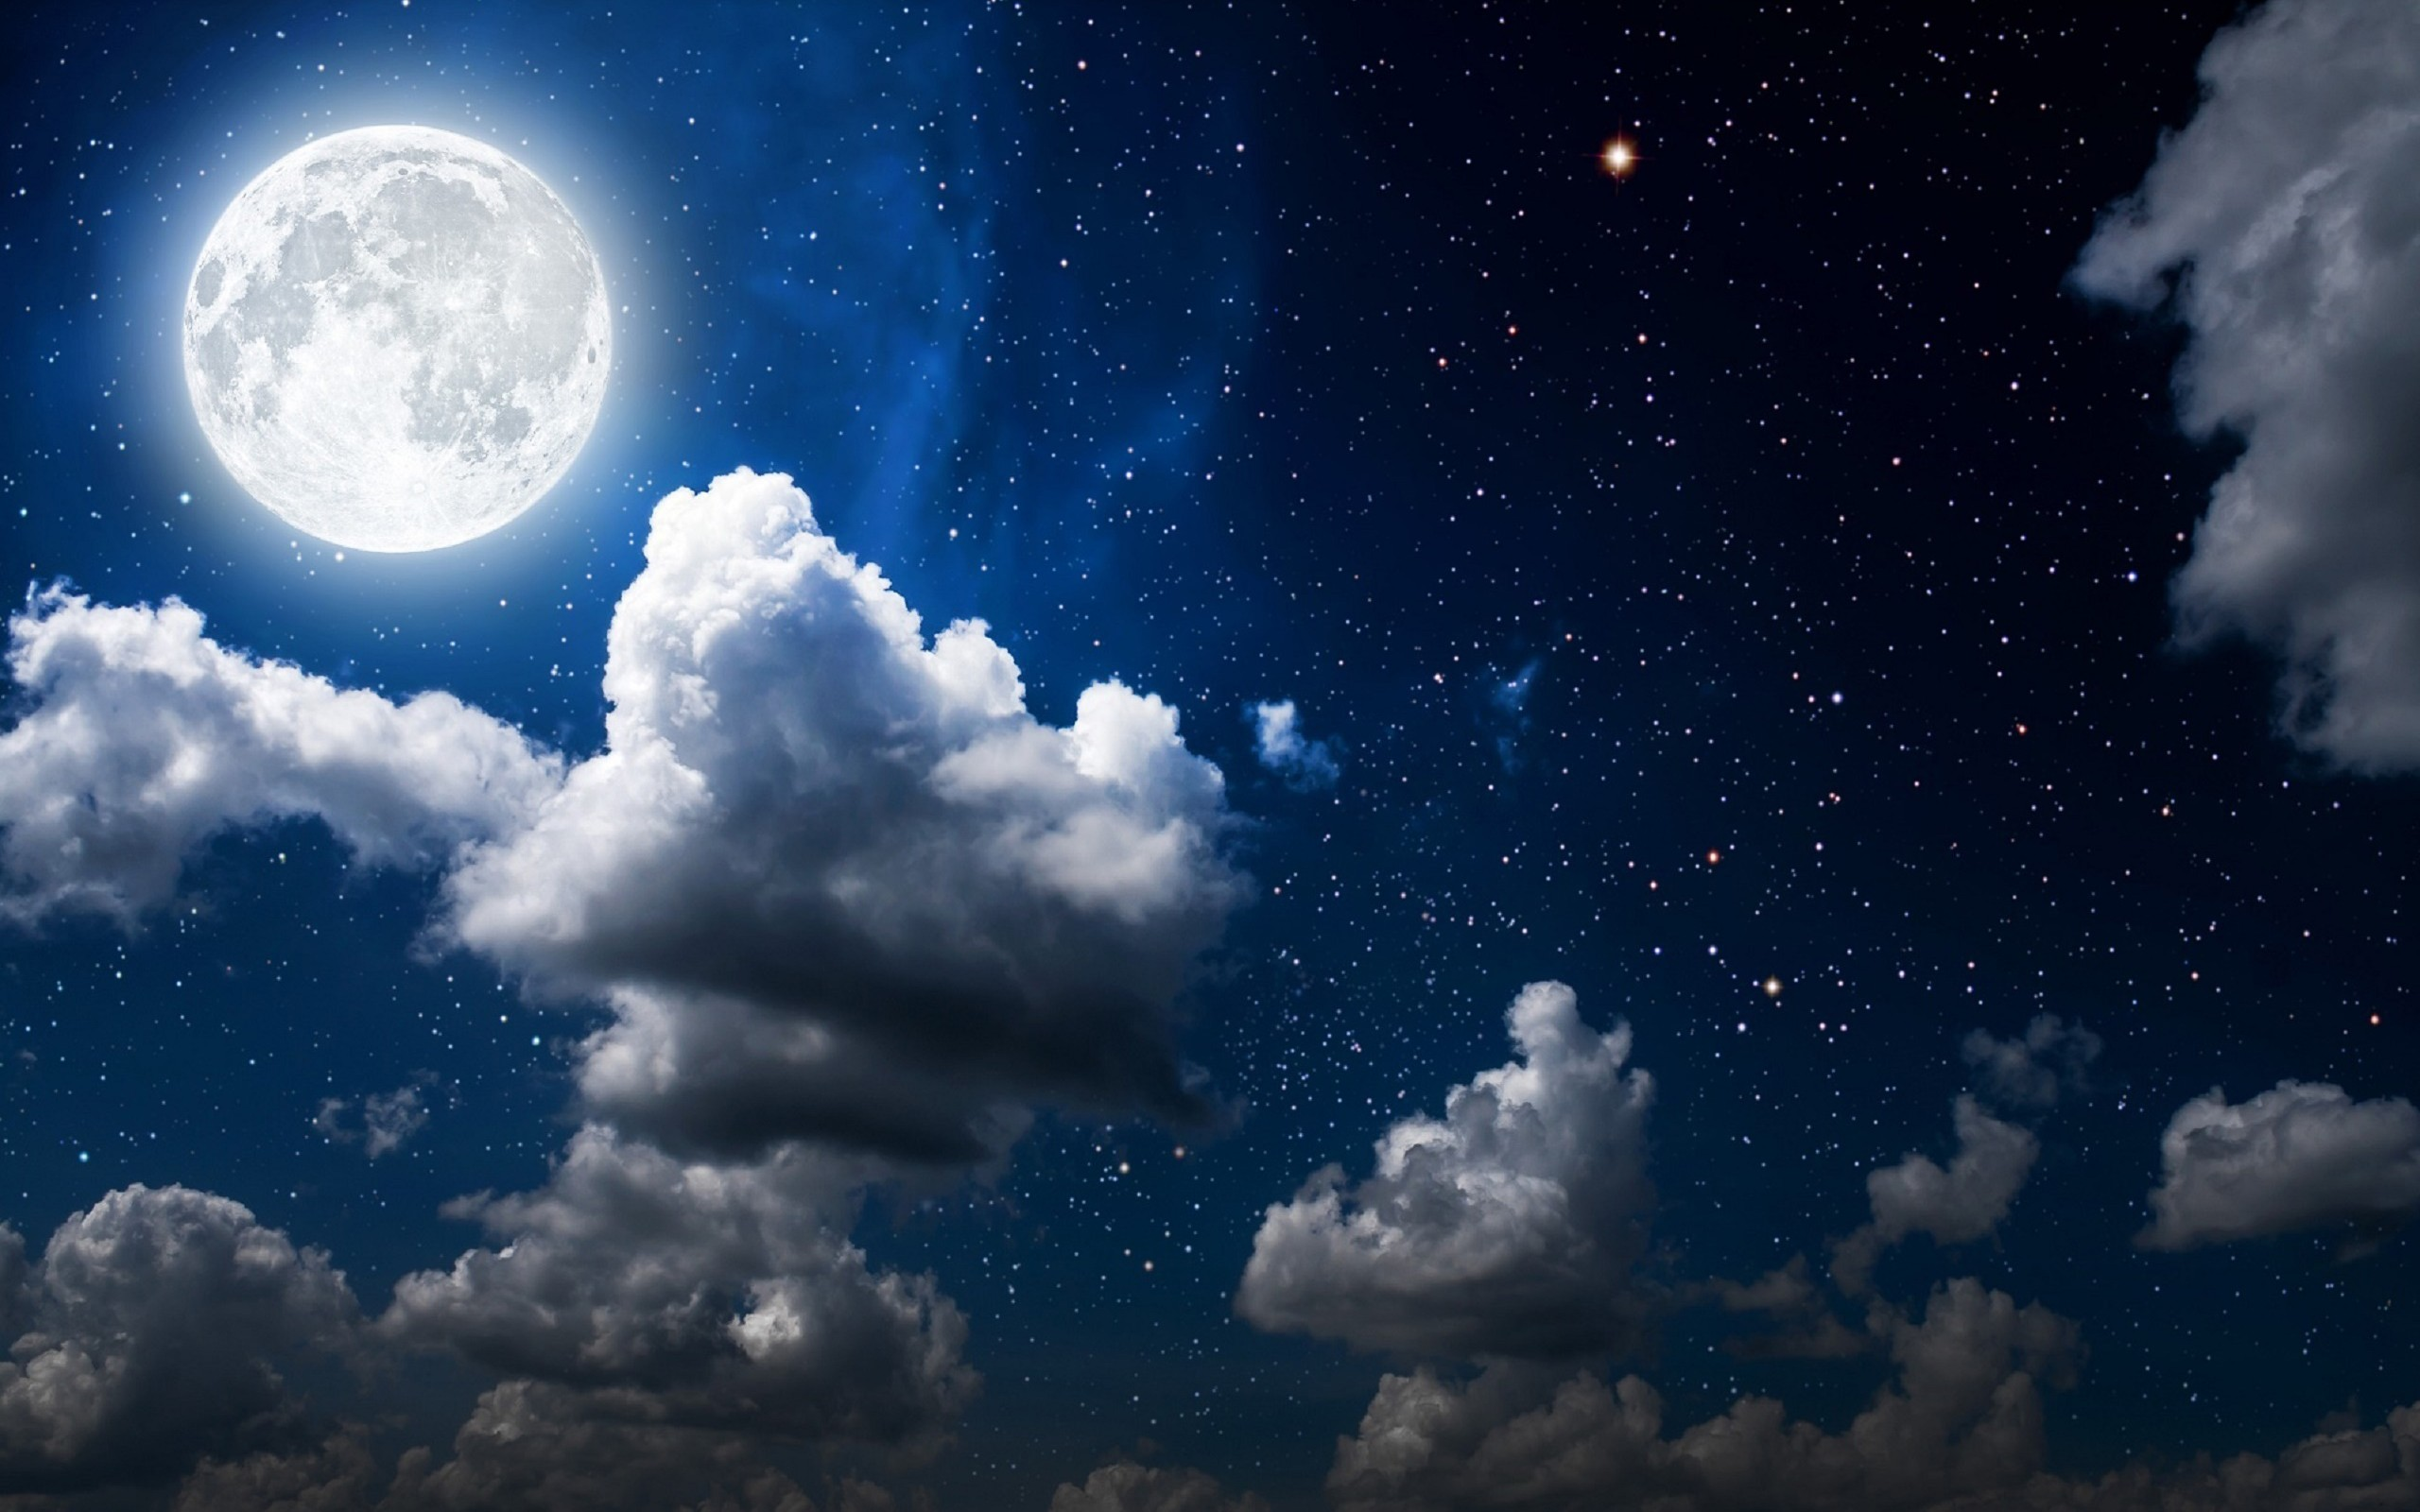 Full Moon On Starry Night HD Wallpaper